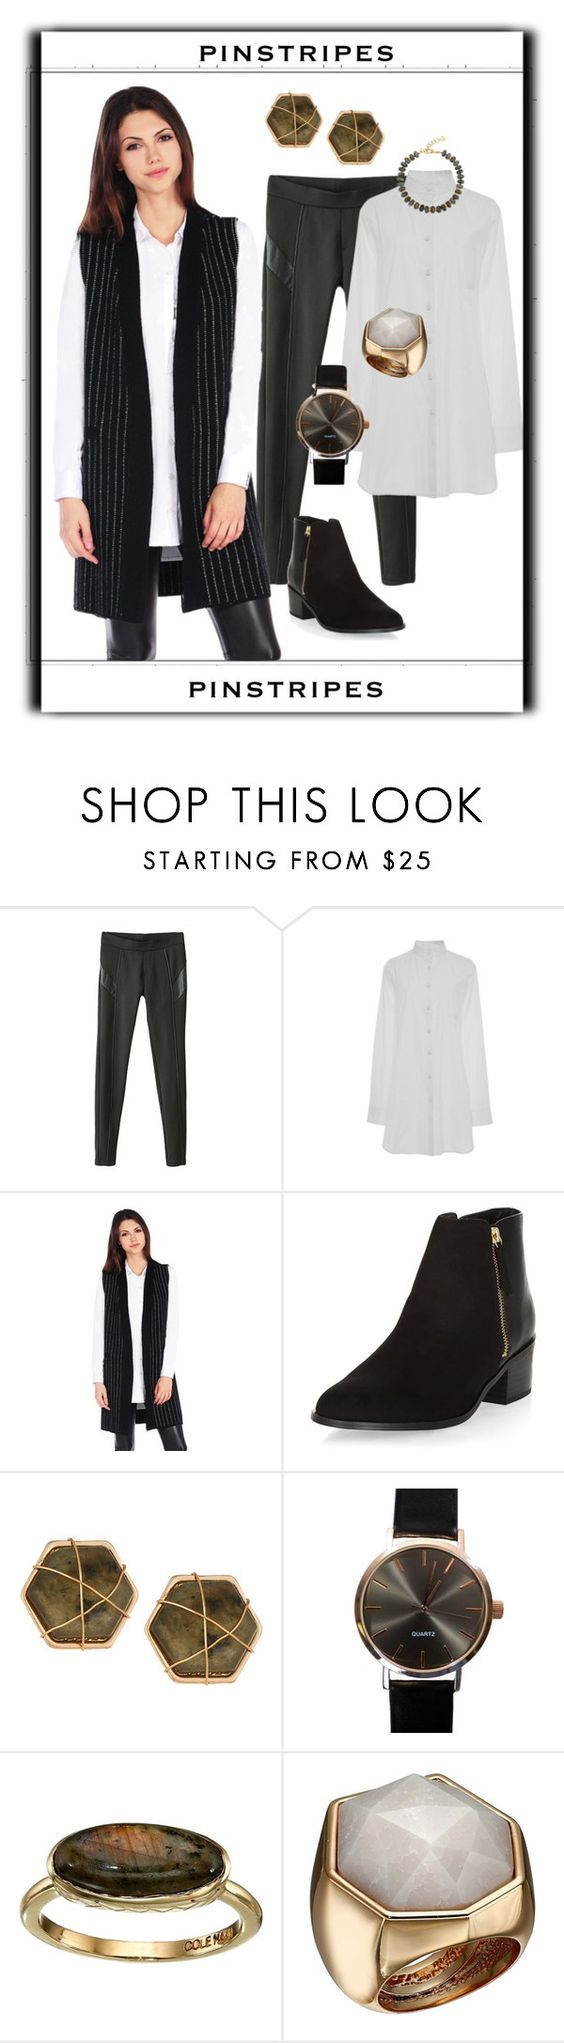 """""""My Pinstripe Style"""" by dundiddit ❤ liked on Polyvore featuring Marisa Witkin, RD Style, New Look, Panacea, Cole Haan, Vince Camuto and Nest"""